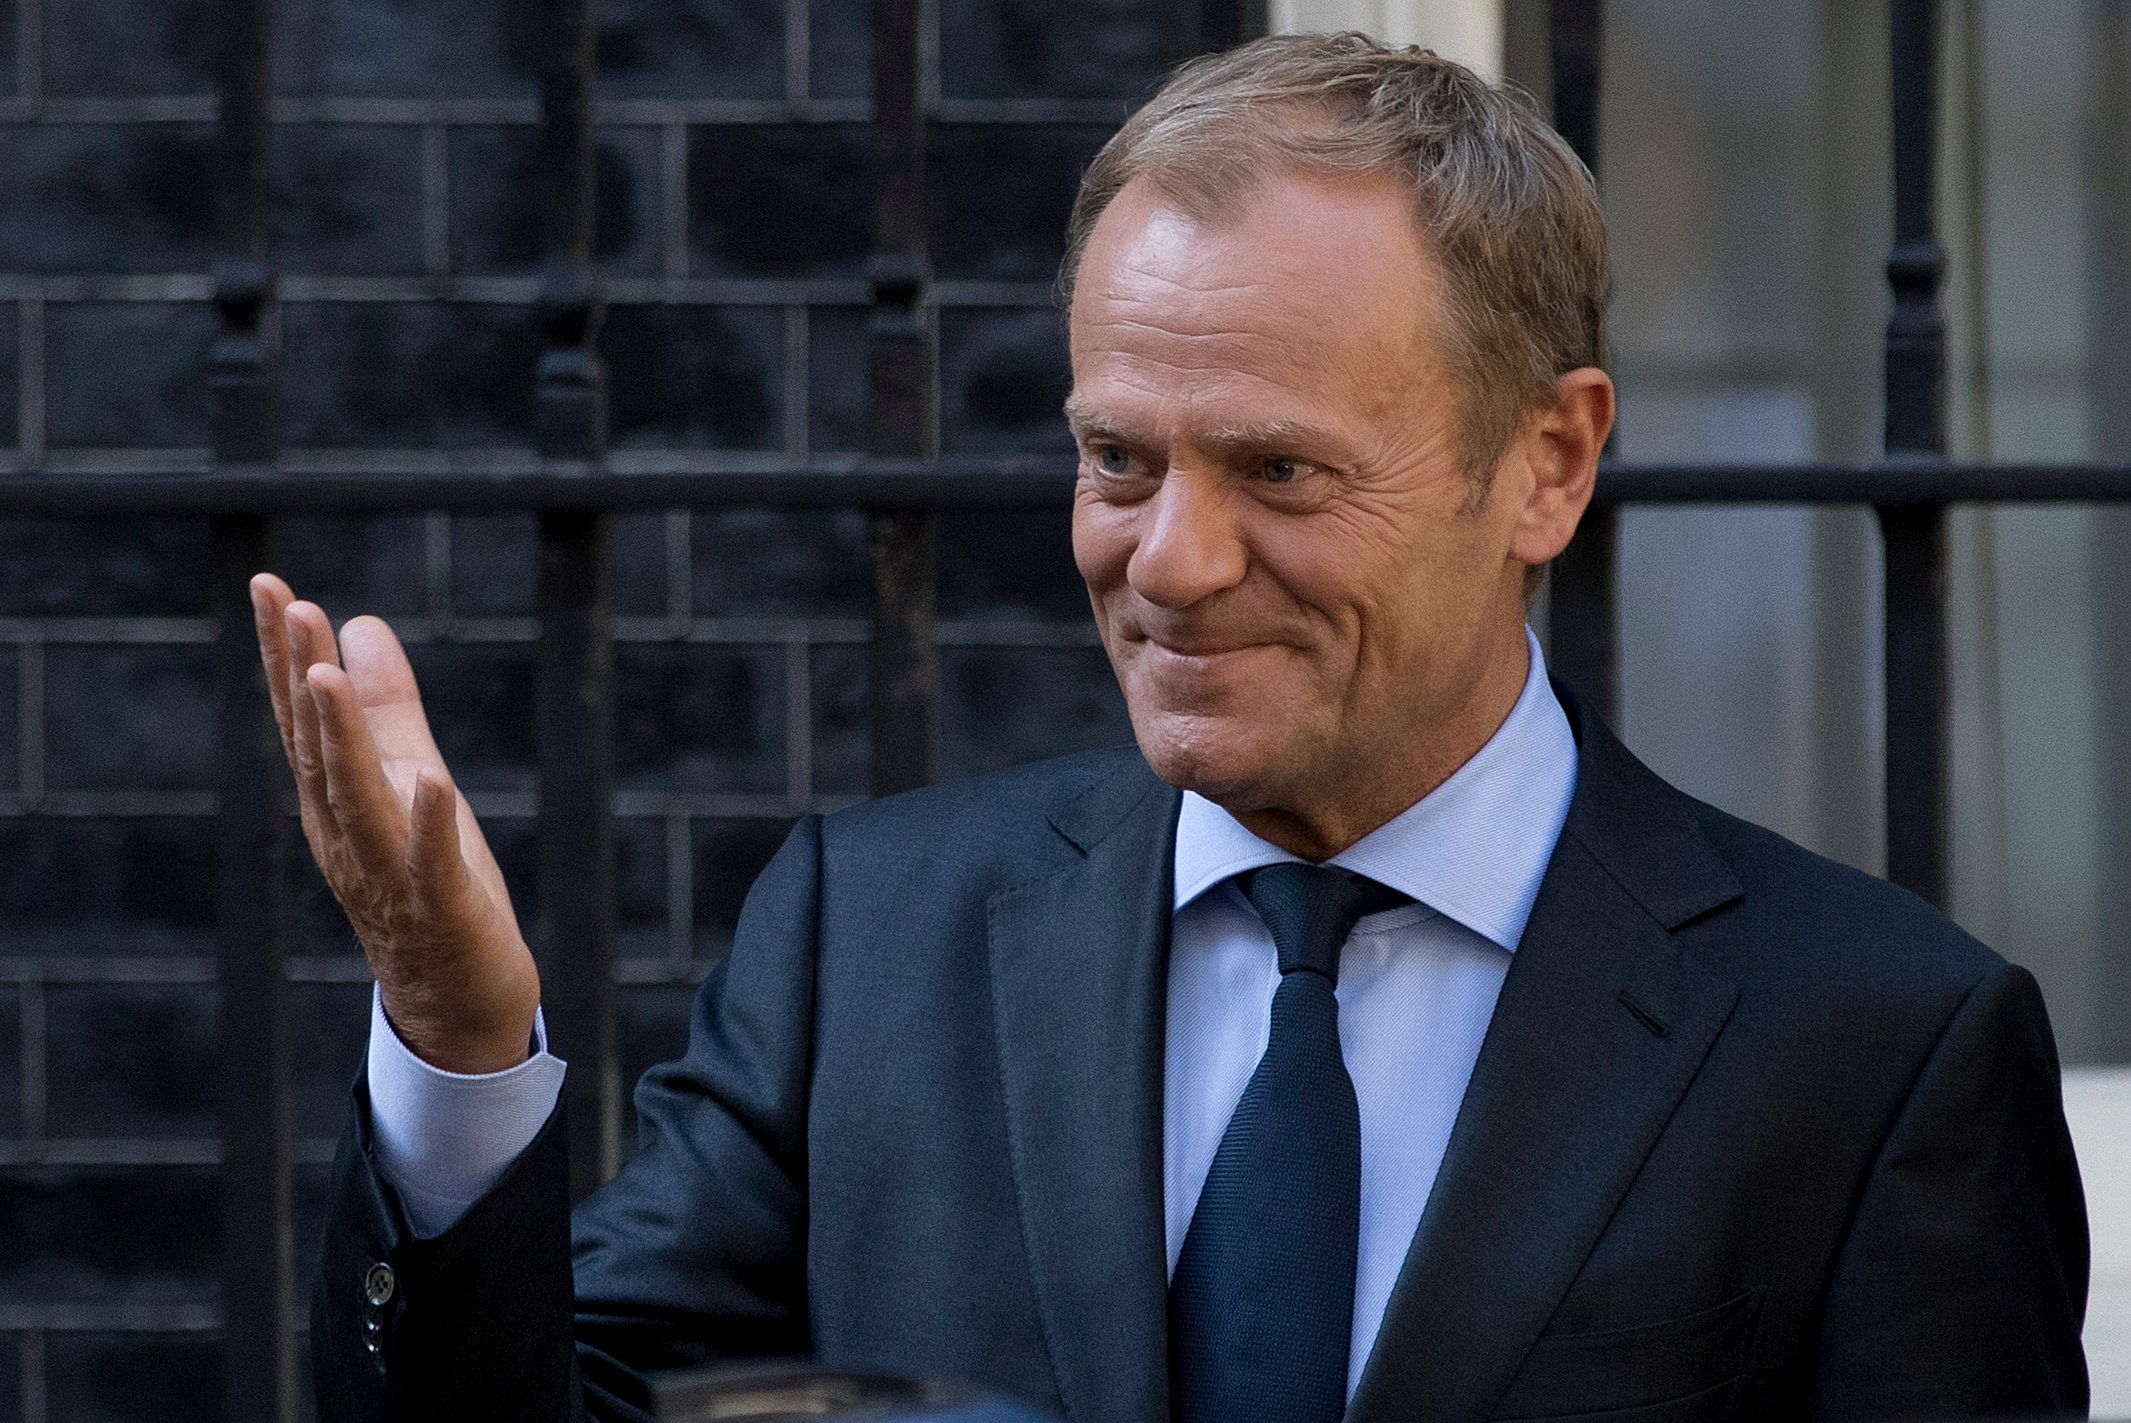 European Council President Donald Tusk has claimed a Brexit deal could be made in a week